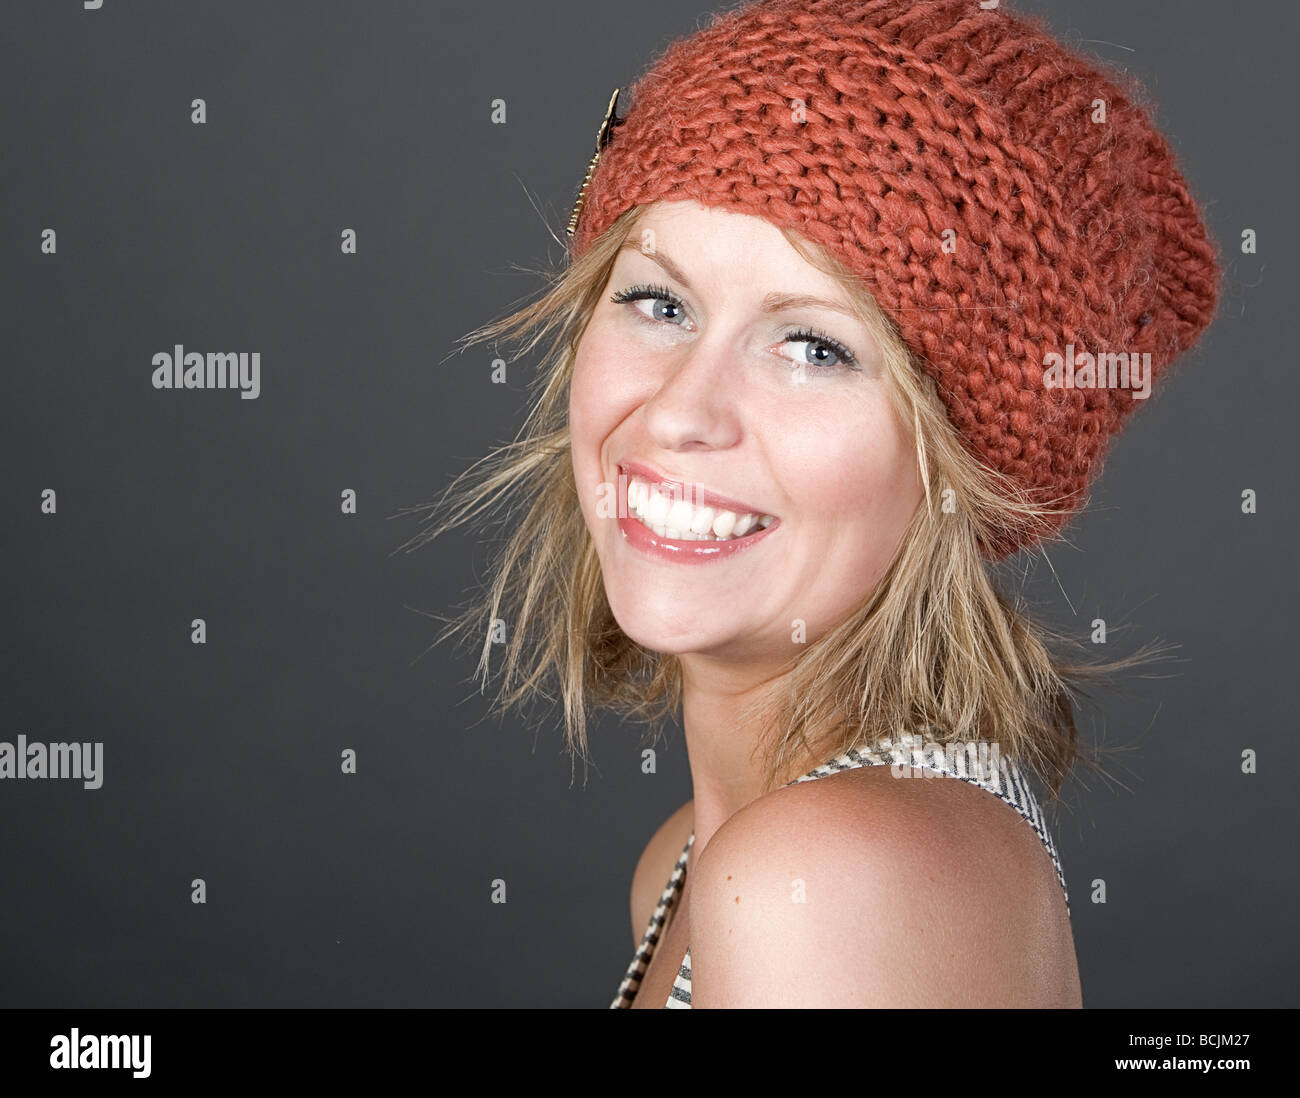 Shot of an Attractive Blonde Girl Smiling in Orange Beanie Hat Stock Photo